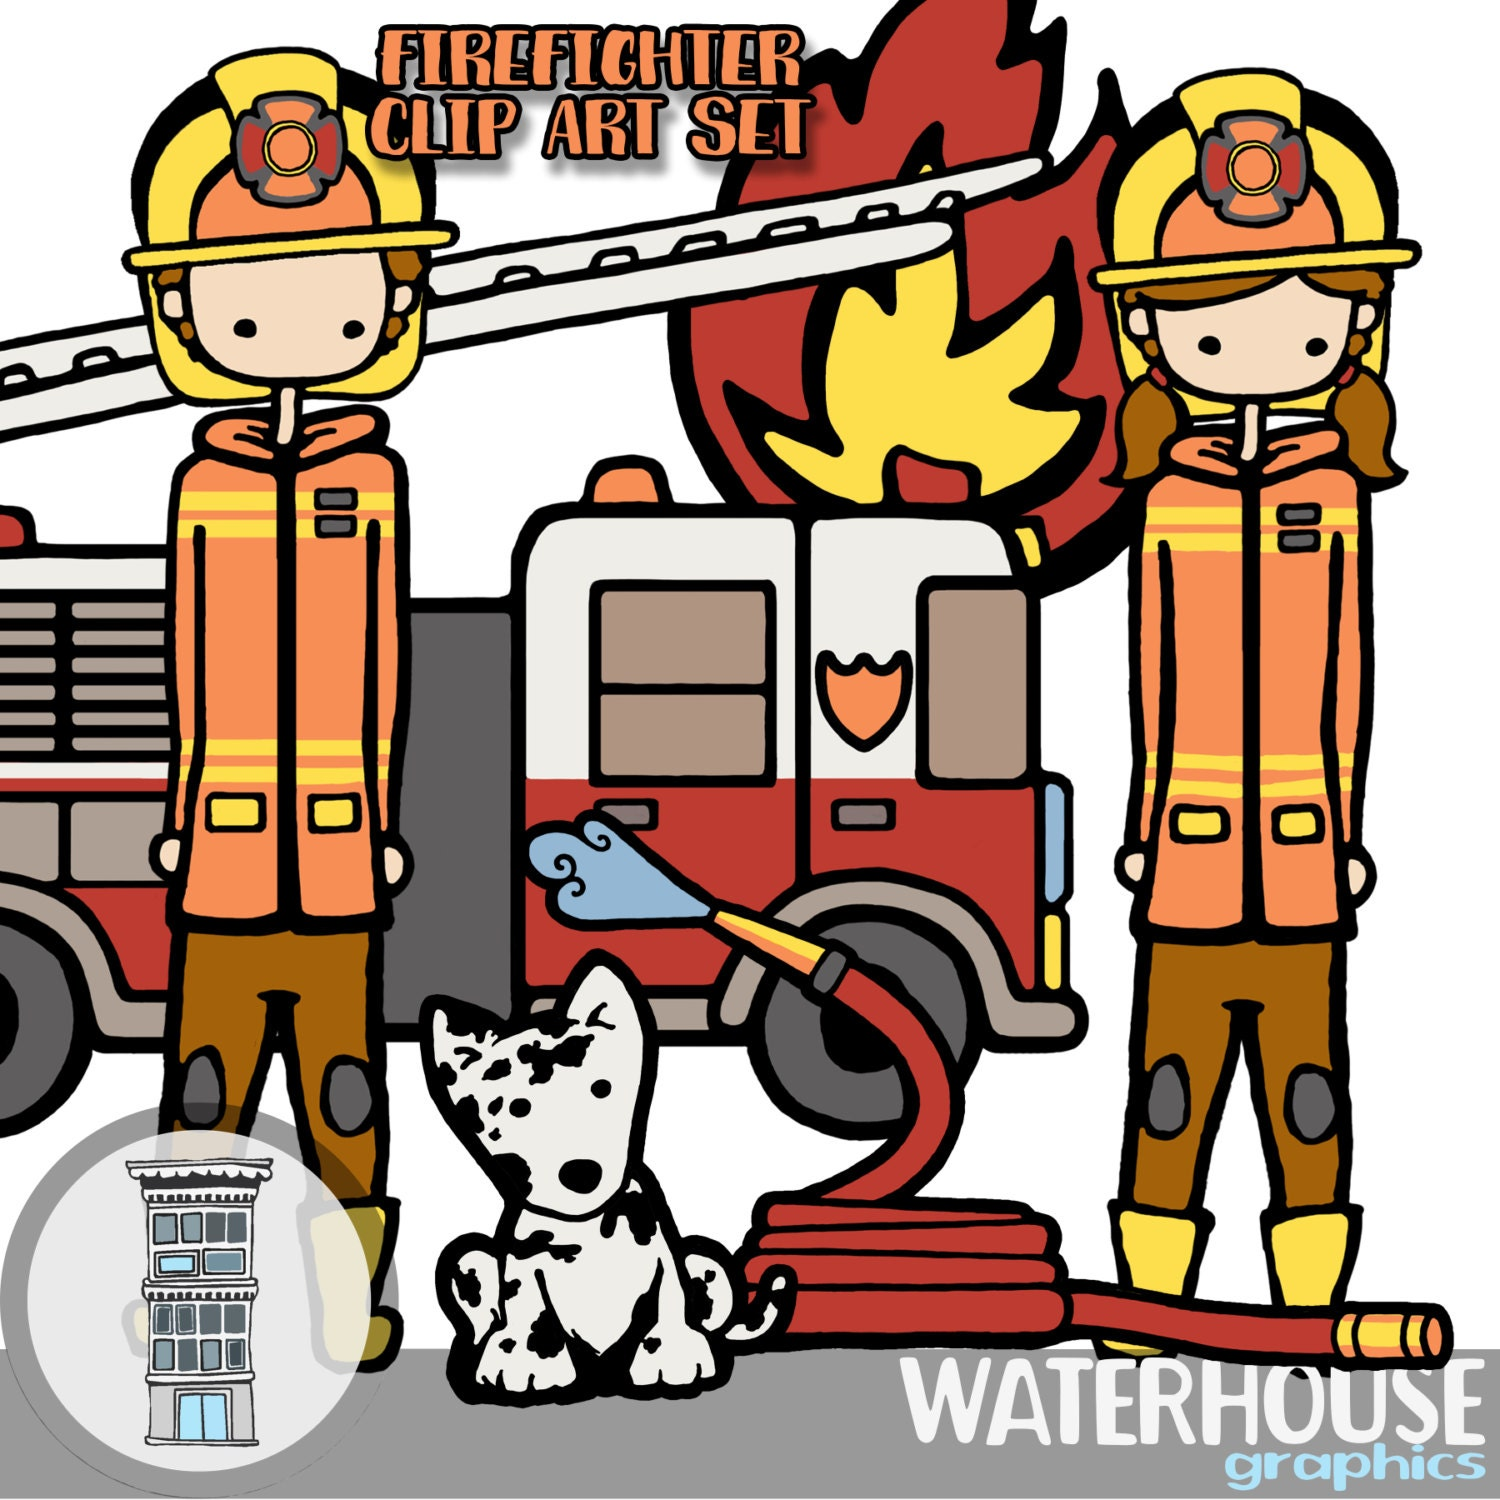 firetruck firefighters clip art etsy rh etsy com firefighter clipart baby firefighter clipart black and white